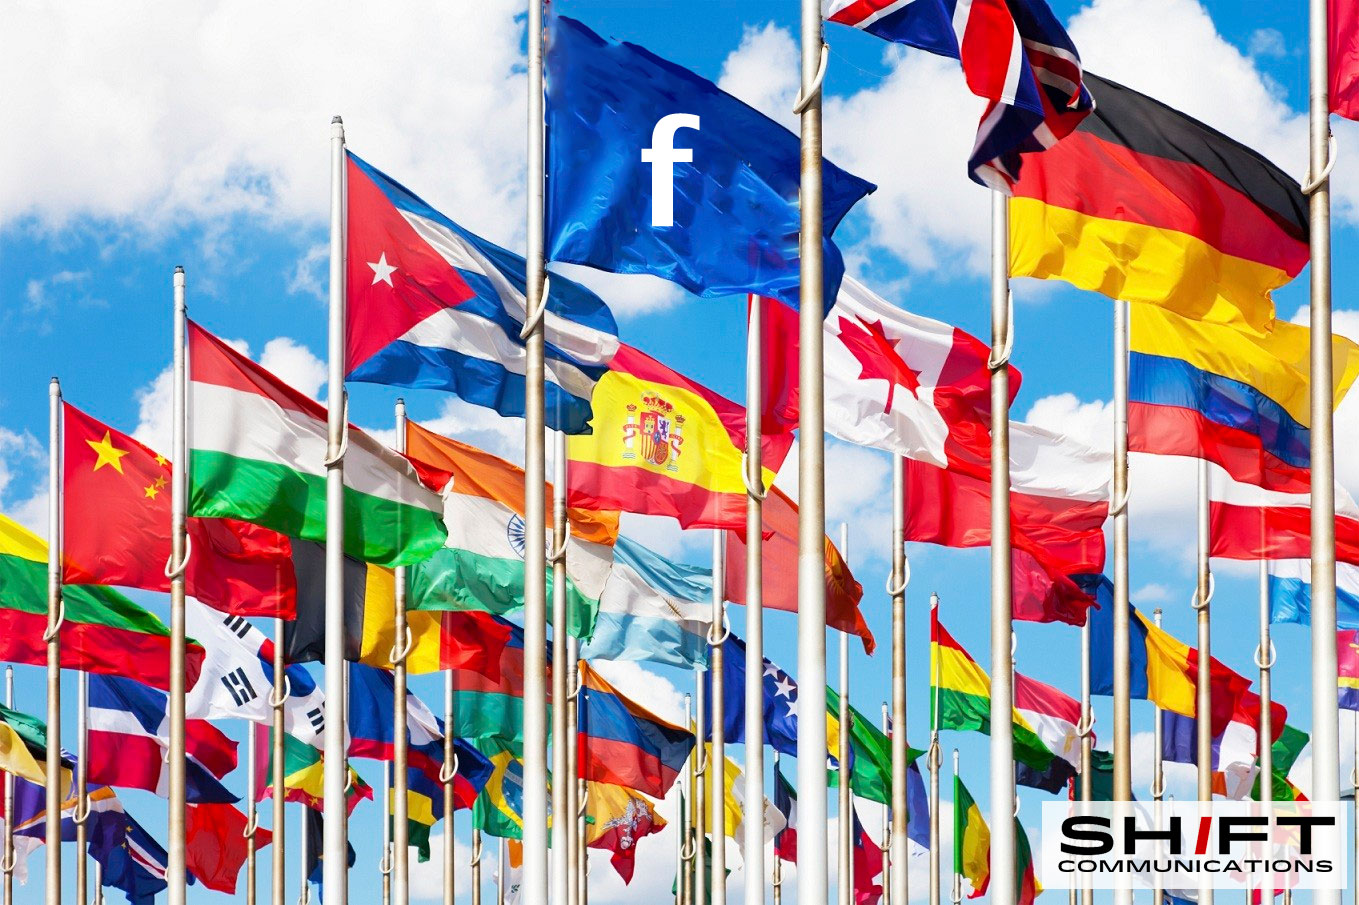 State of Social 1Q14: Facebook second-largest country in the world, 4 out of 5 users mobile